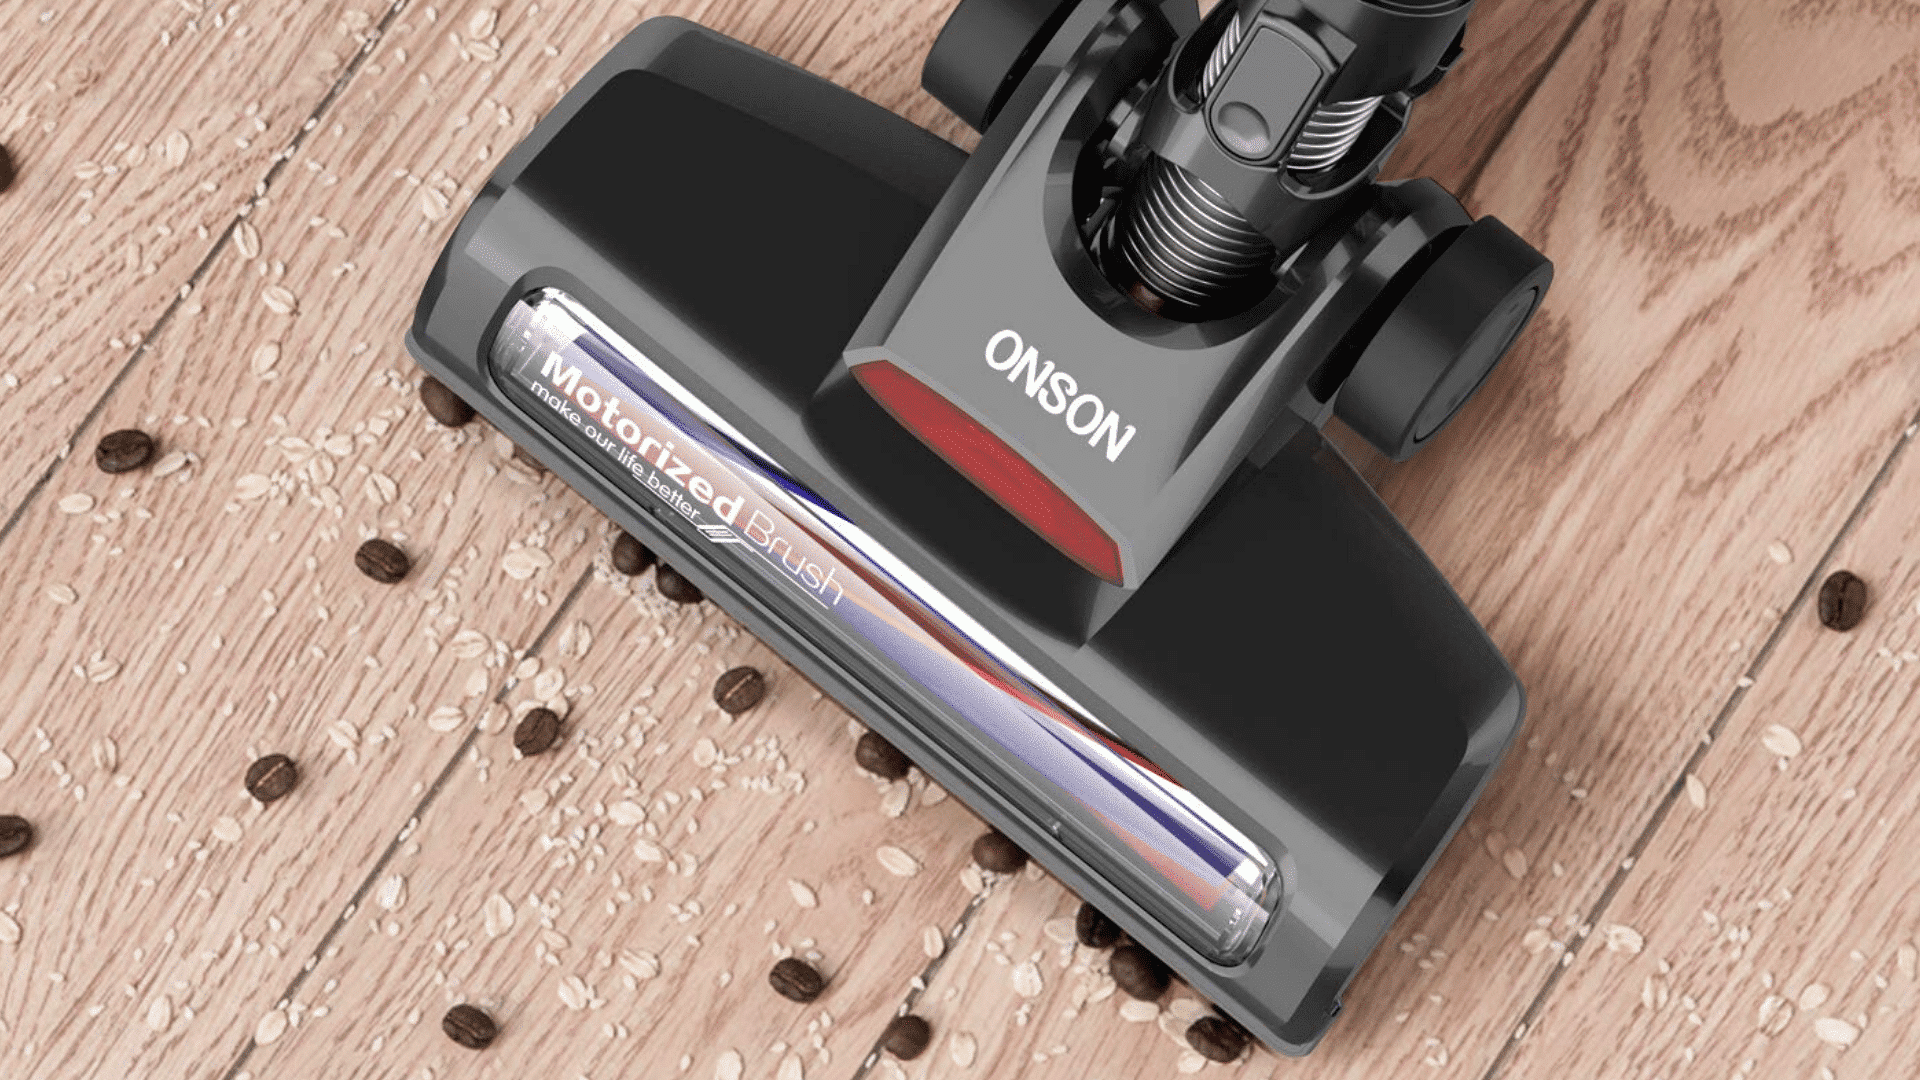 image of ONSON Stick Vacuum Cleaner being used to clean floor